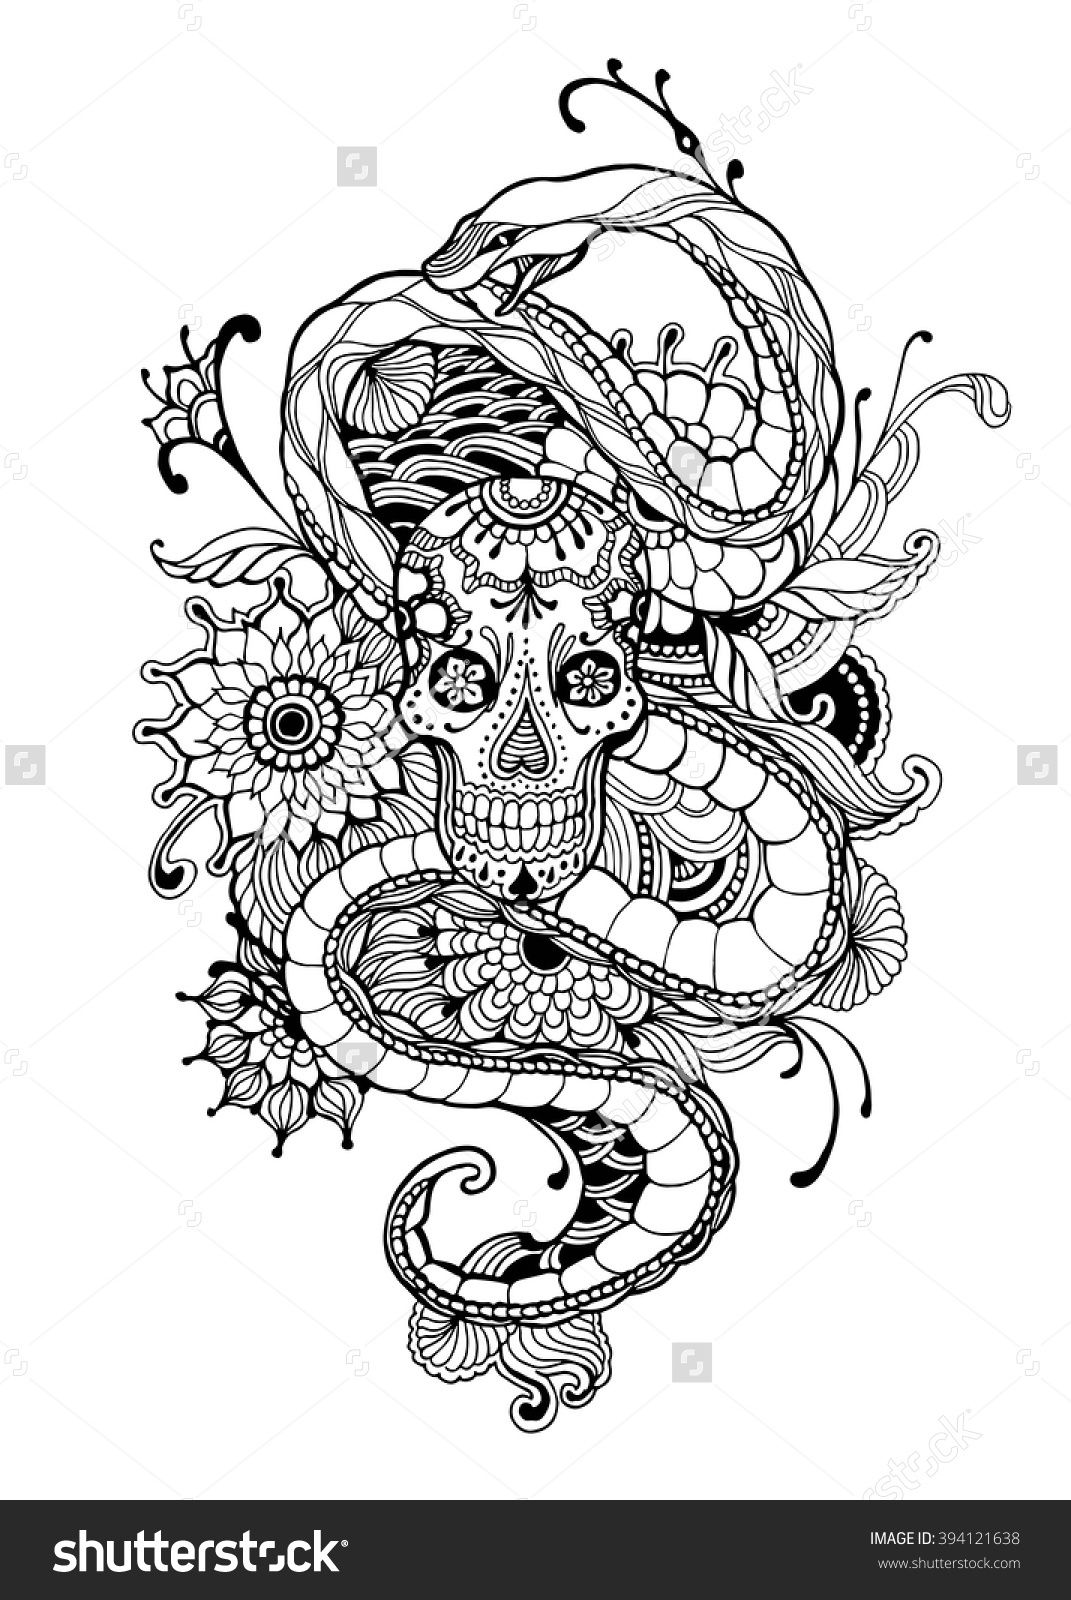 Skull And Snake Adult Coloring Page Vector Illustration